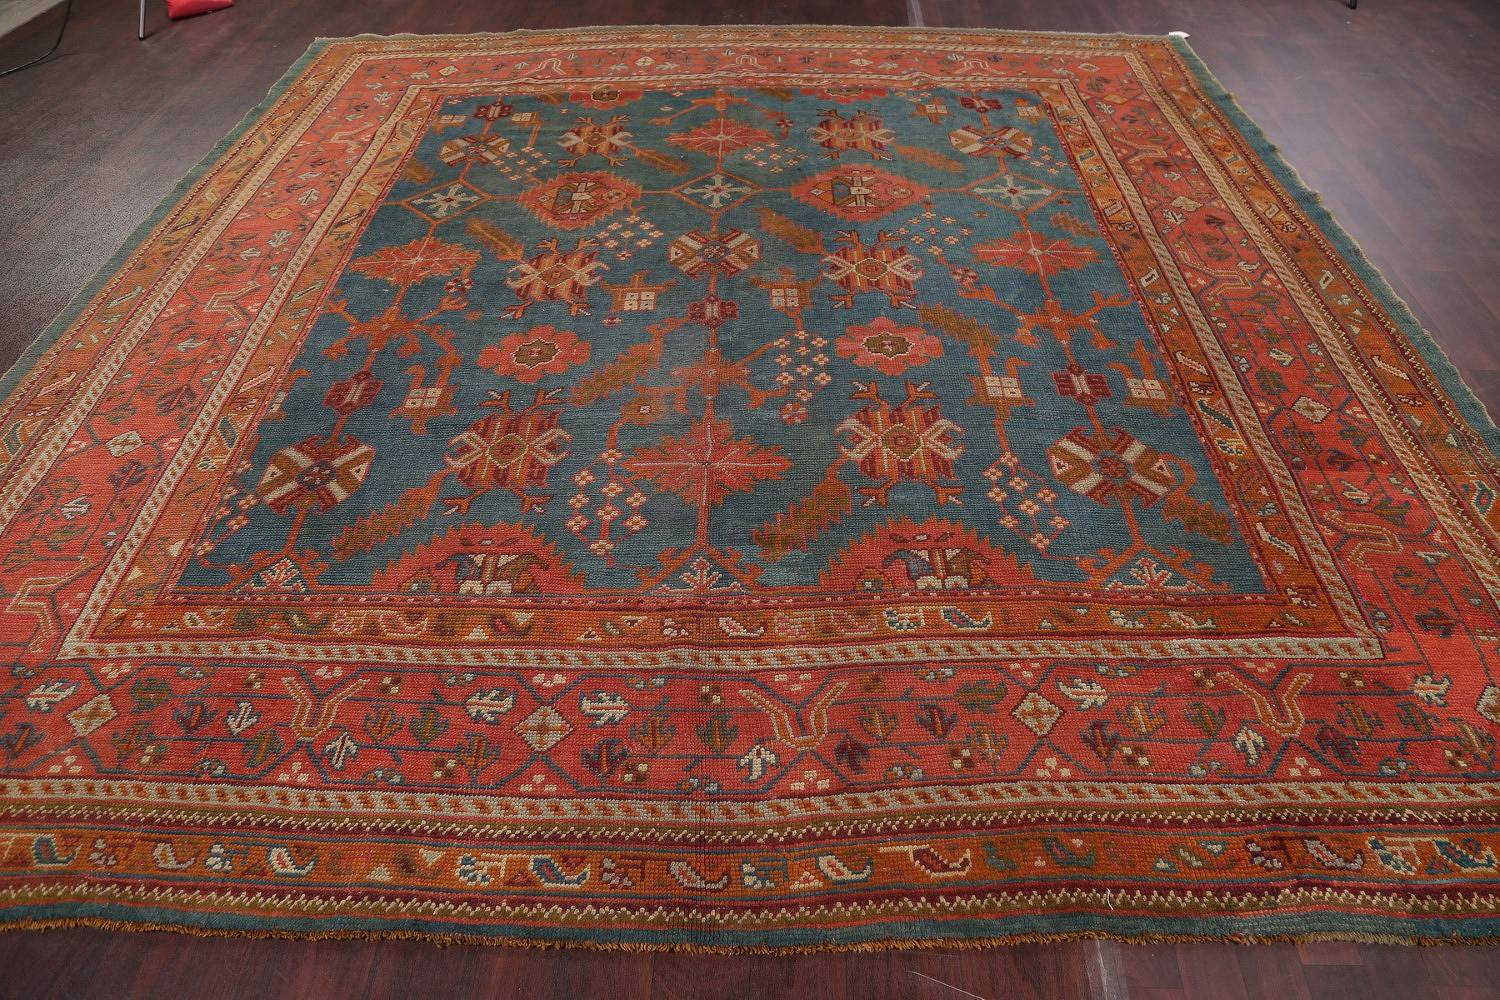 Antique Teal Blue Oushak Turkish Oriental Square Rug 11'x11'